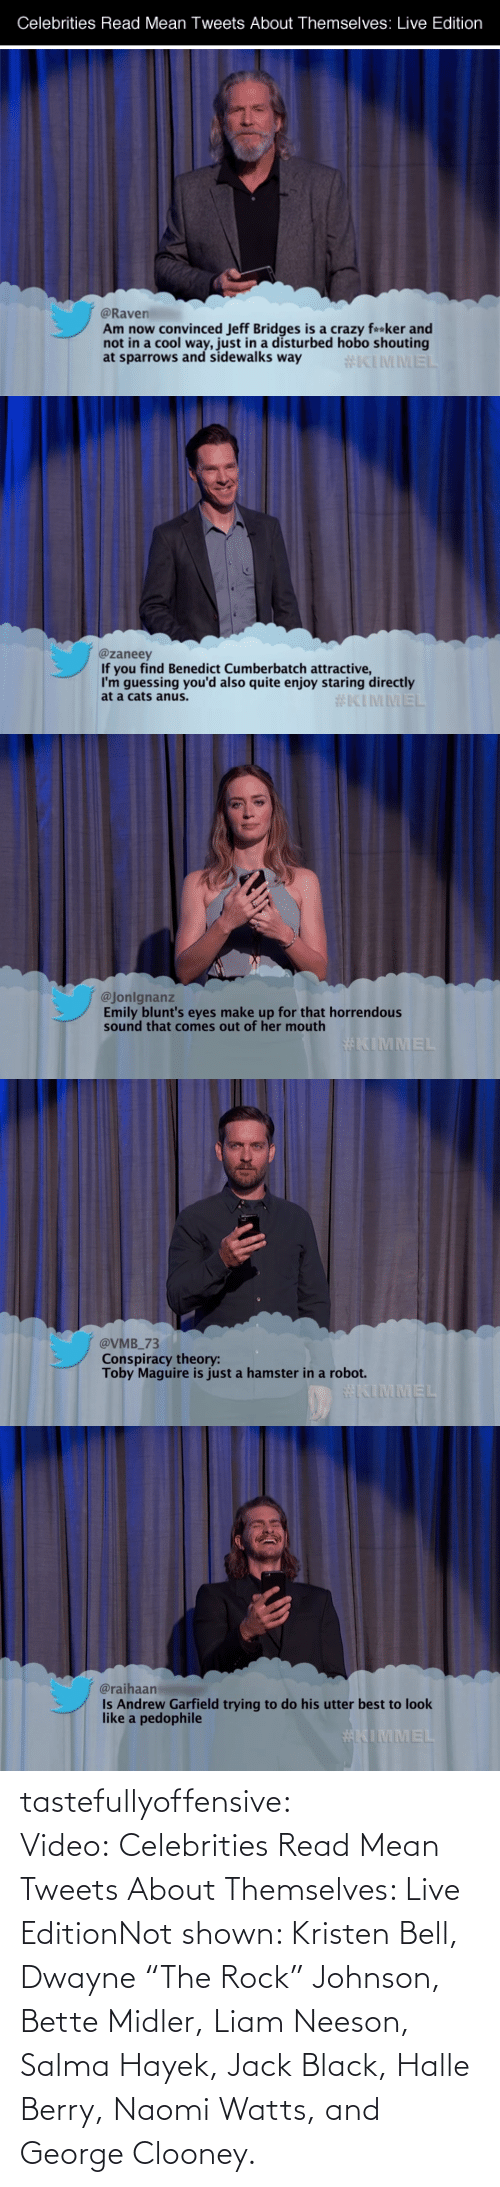 "mean tweets: Celebrities Read Mean Tweets About Themselves: Live Edition  @Raven  Am now convinced Jeff Bridges is a crazy fa*ker and  not in a cool way, just in a disturbed hobo shouting  at sparrows and sidewalks way  #KIMMEL   @zaneey  If you find Benedict Cumberbatch attractive,  I'm guessing you'd also quite enjoy staring directly  at a cats anus.  #KIMMEL   @Jonlgnanz  Emily blunt's eyes make up for that horrendous  sound that comes out of her mouth  #KIMMEL   @VMB_73  Conspiracy theory:  Toby Maguire is just a hamster in a robot.  KIMMEL   @raihaan  Is Andrew Garfield trying to do his utter best to look  like a pedophile  tastefullyoffensive:  Video: Celebrities Read Mean Tweets About Themselves: Live EditionNot shown: Kristen Bell, Dwayne ""The Rock"" Johnson, Bette Midler, Liam Neeson, Salma Hayek, Jack Black, Halle Berry, Naomi Watts, and George Clooney."